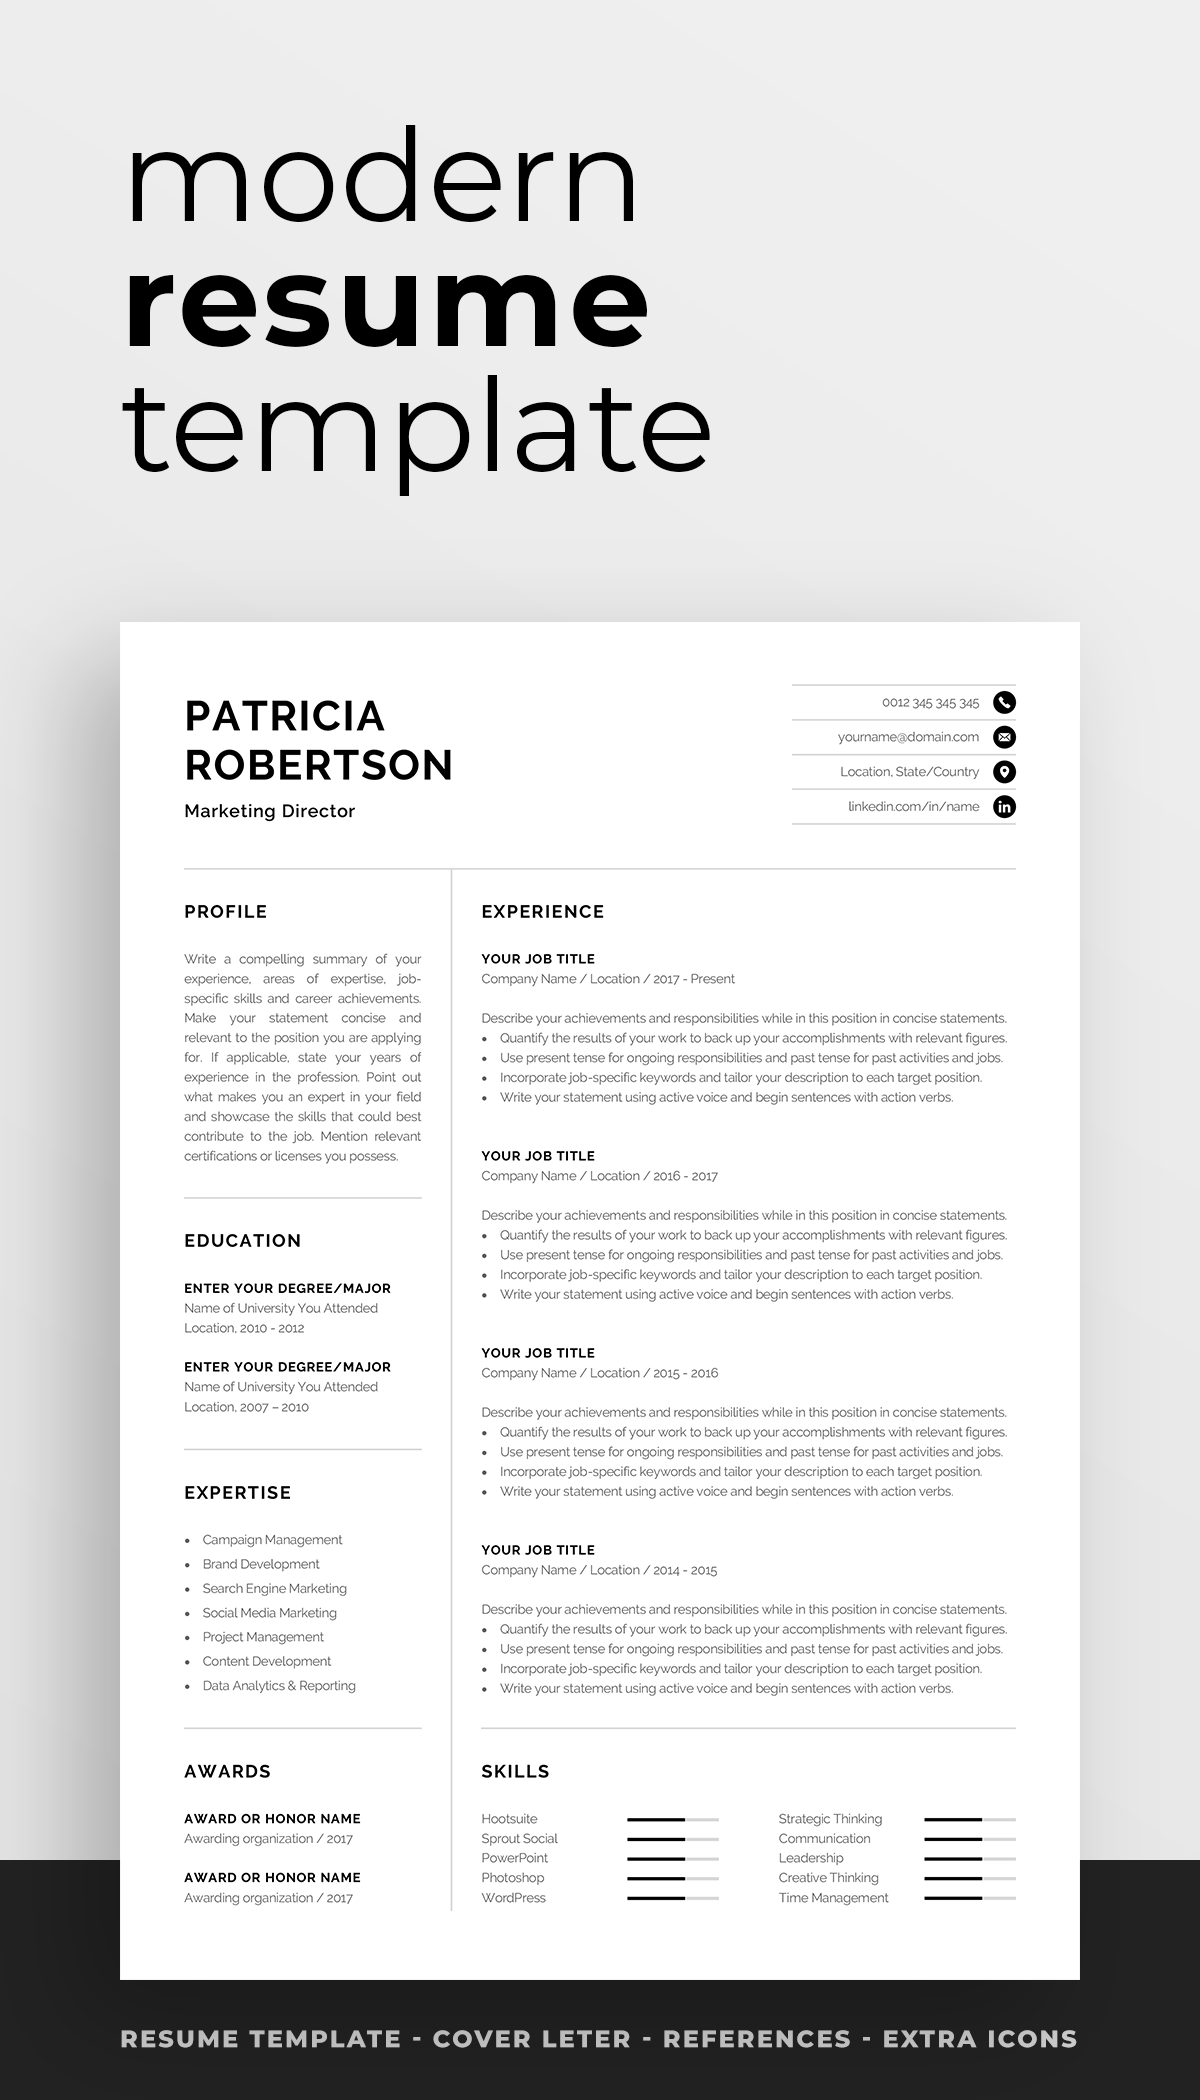 Professional 1 Page Resume Template Modern One Page Cv Word Mac Pages Minimalist Design Developer Designer Marketing Patricia Modern Resume Template Minimalist Resume Modern Resume